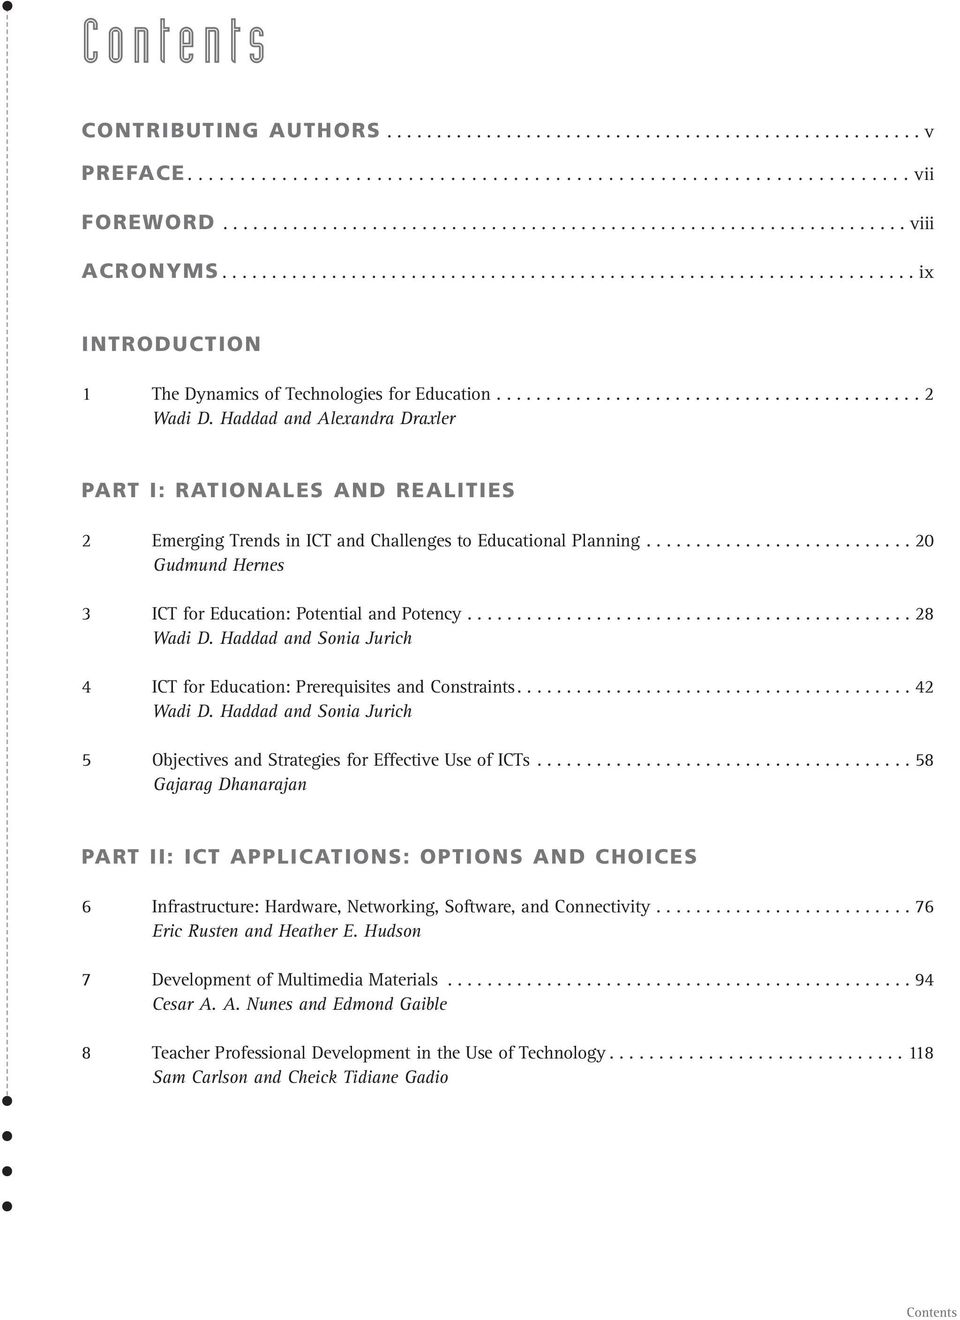 Haddad and Alexandra Draxler PART I: RATIONALES AND REALITIES 2 Emerging Trends in ICT and Challenges to Educational Planning........................... 20 Gudmund Hernes 3 ICT for Education: Potential and Potency.